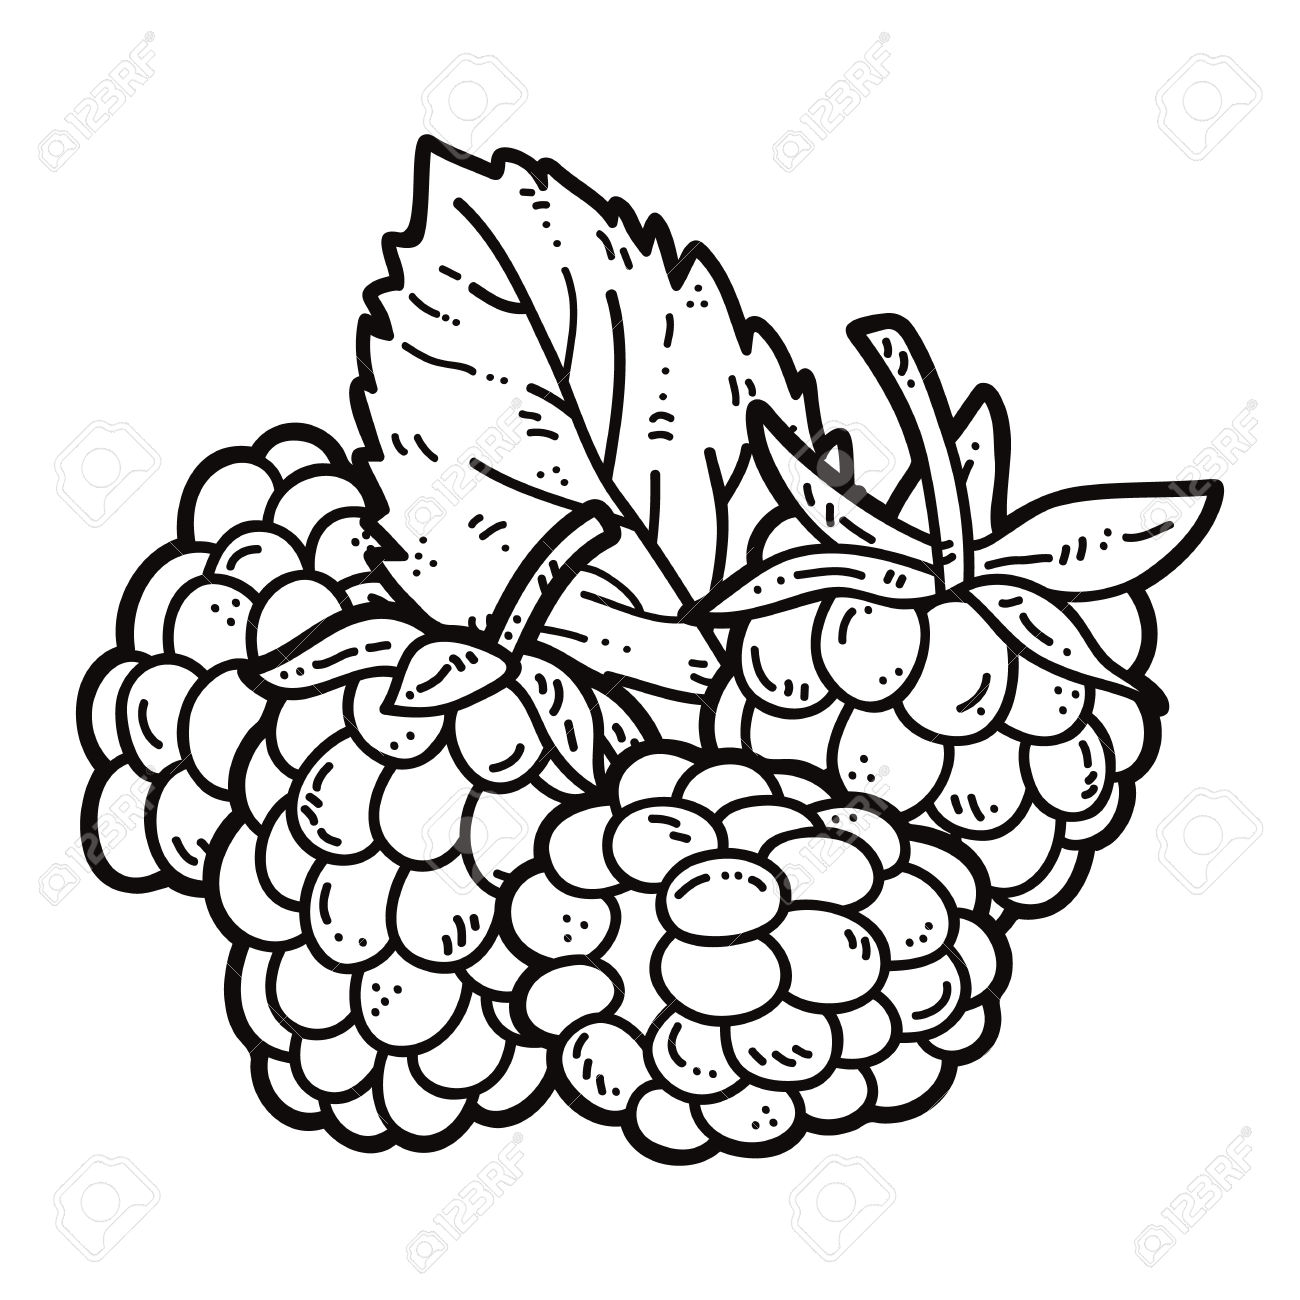 1300x1300 Fresh Raspberries Coloring Pages Design Printable Coloring Sheet